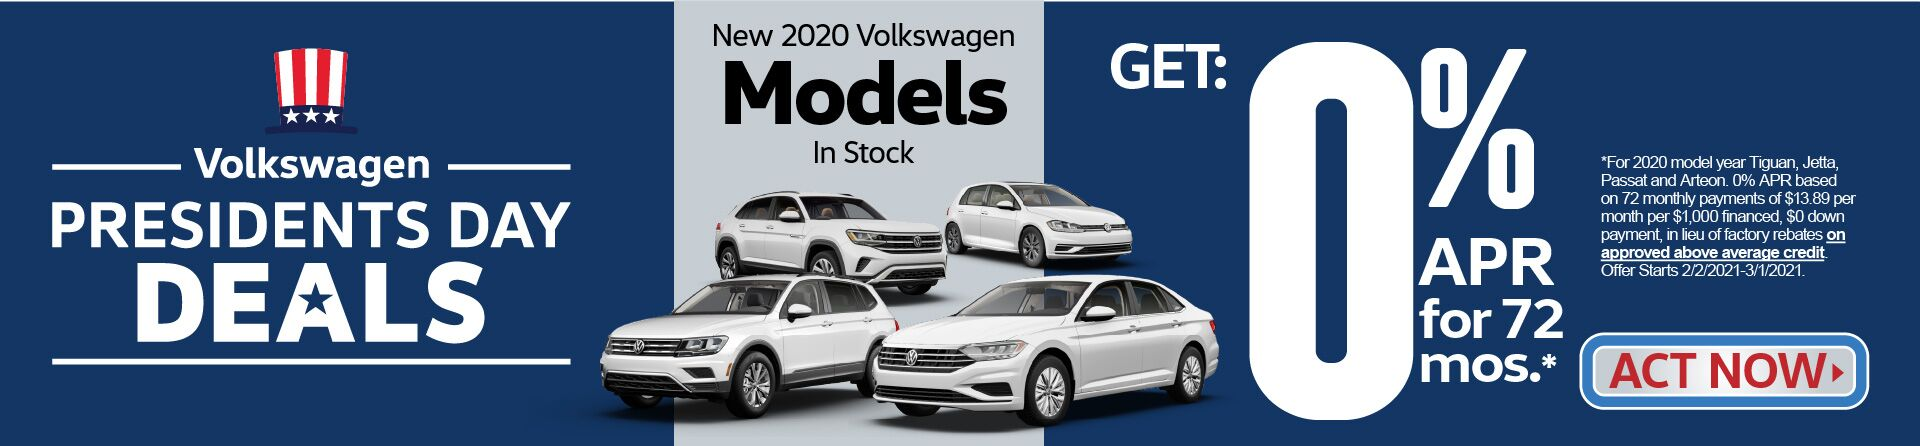 New 2020 VW Models in stock get 0% APR for 72 months | Act Now